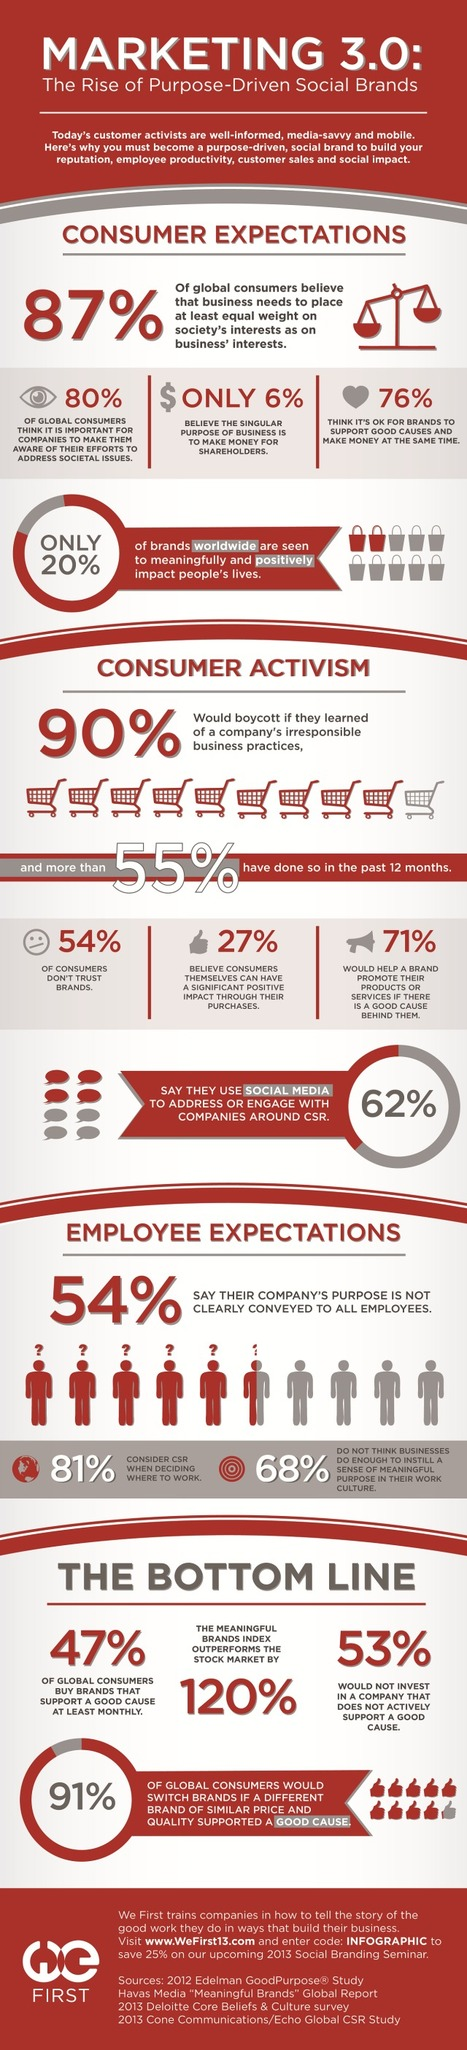 Rise of Purpose-Driven Social #Marketing Brands #infographic via @MarketingHits | CAEXI Expertises | Scoop.it